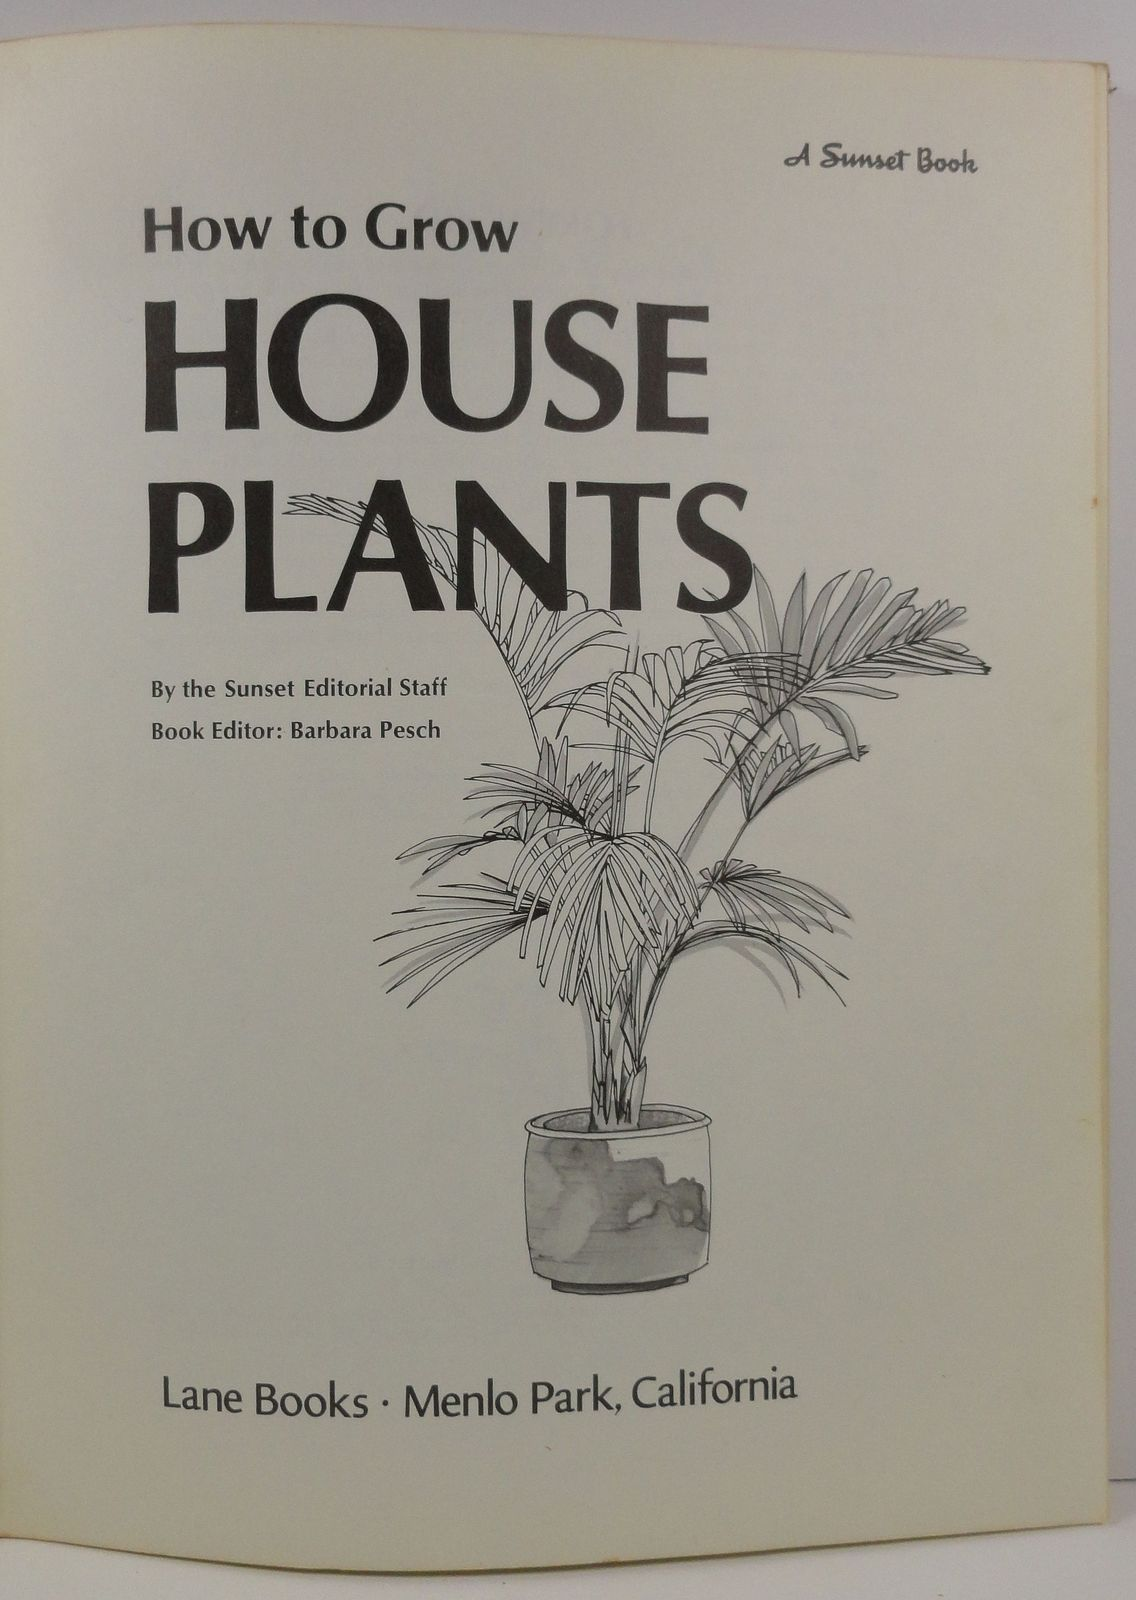 How to Grow House Plants 1974 A Sunset Book